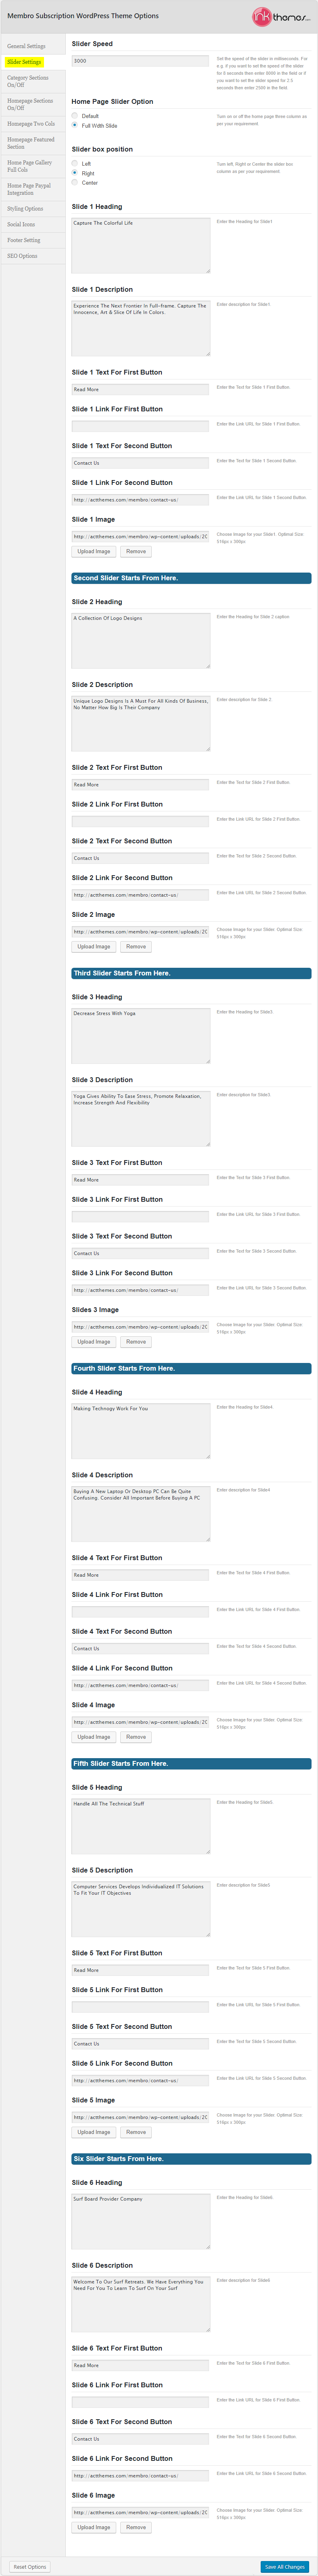 Membro_Theme Options_Slider Settings